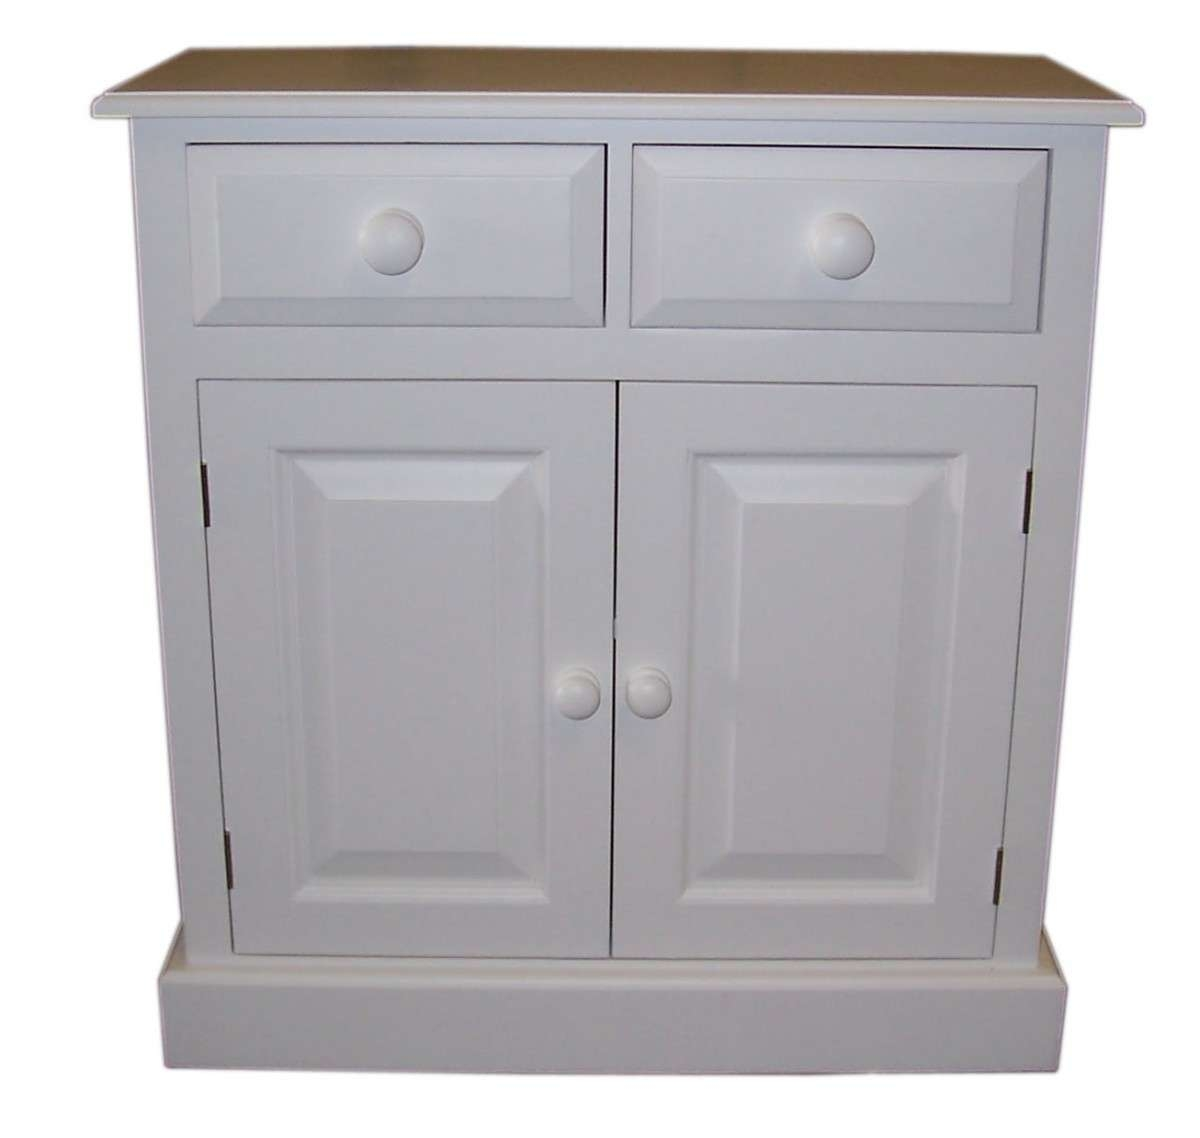 """Doors And Drawers Shallow Depth Sideboard – Available In 2'6"""", 3 Throughout 14 Inch Deep Sideboards (View 13 of 20)"""